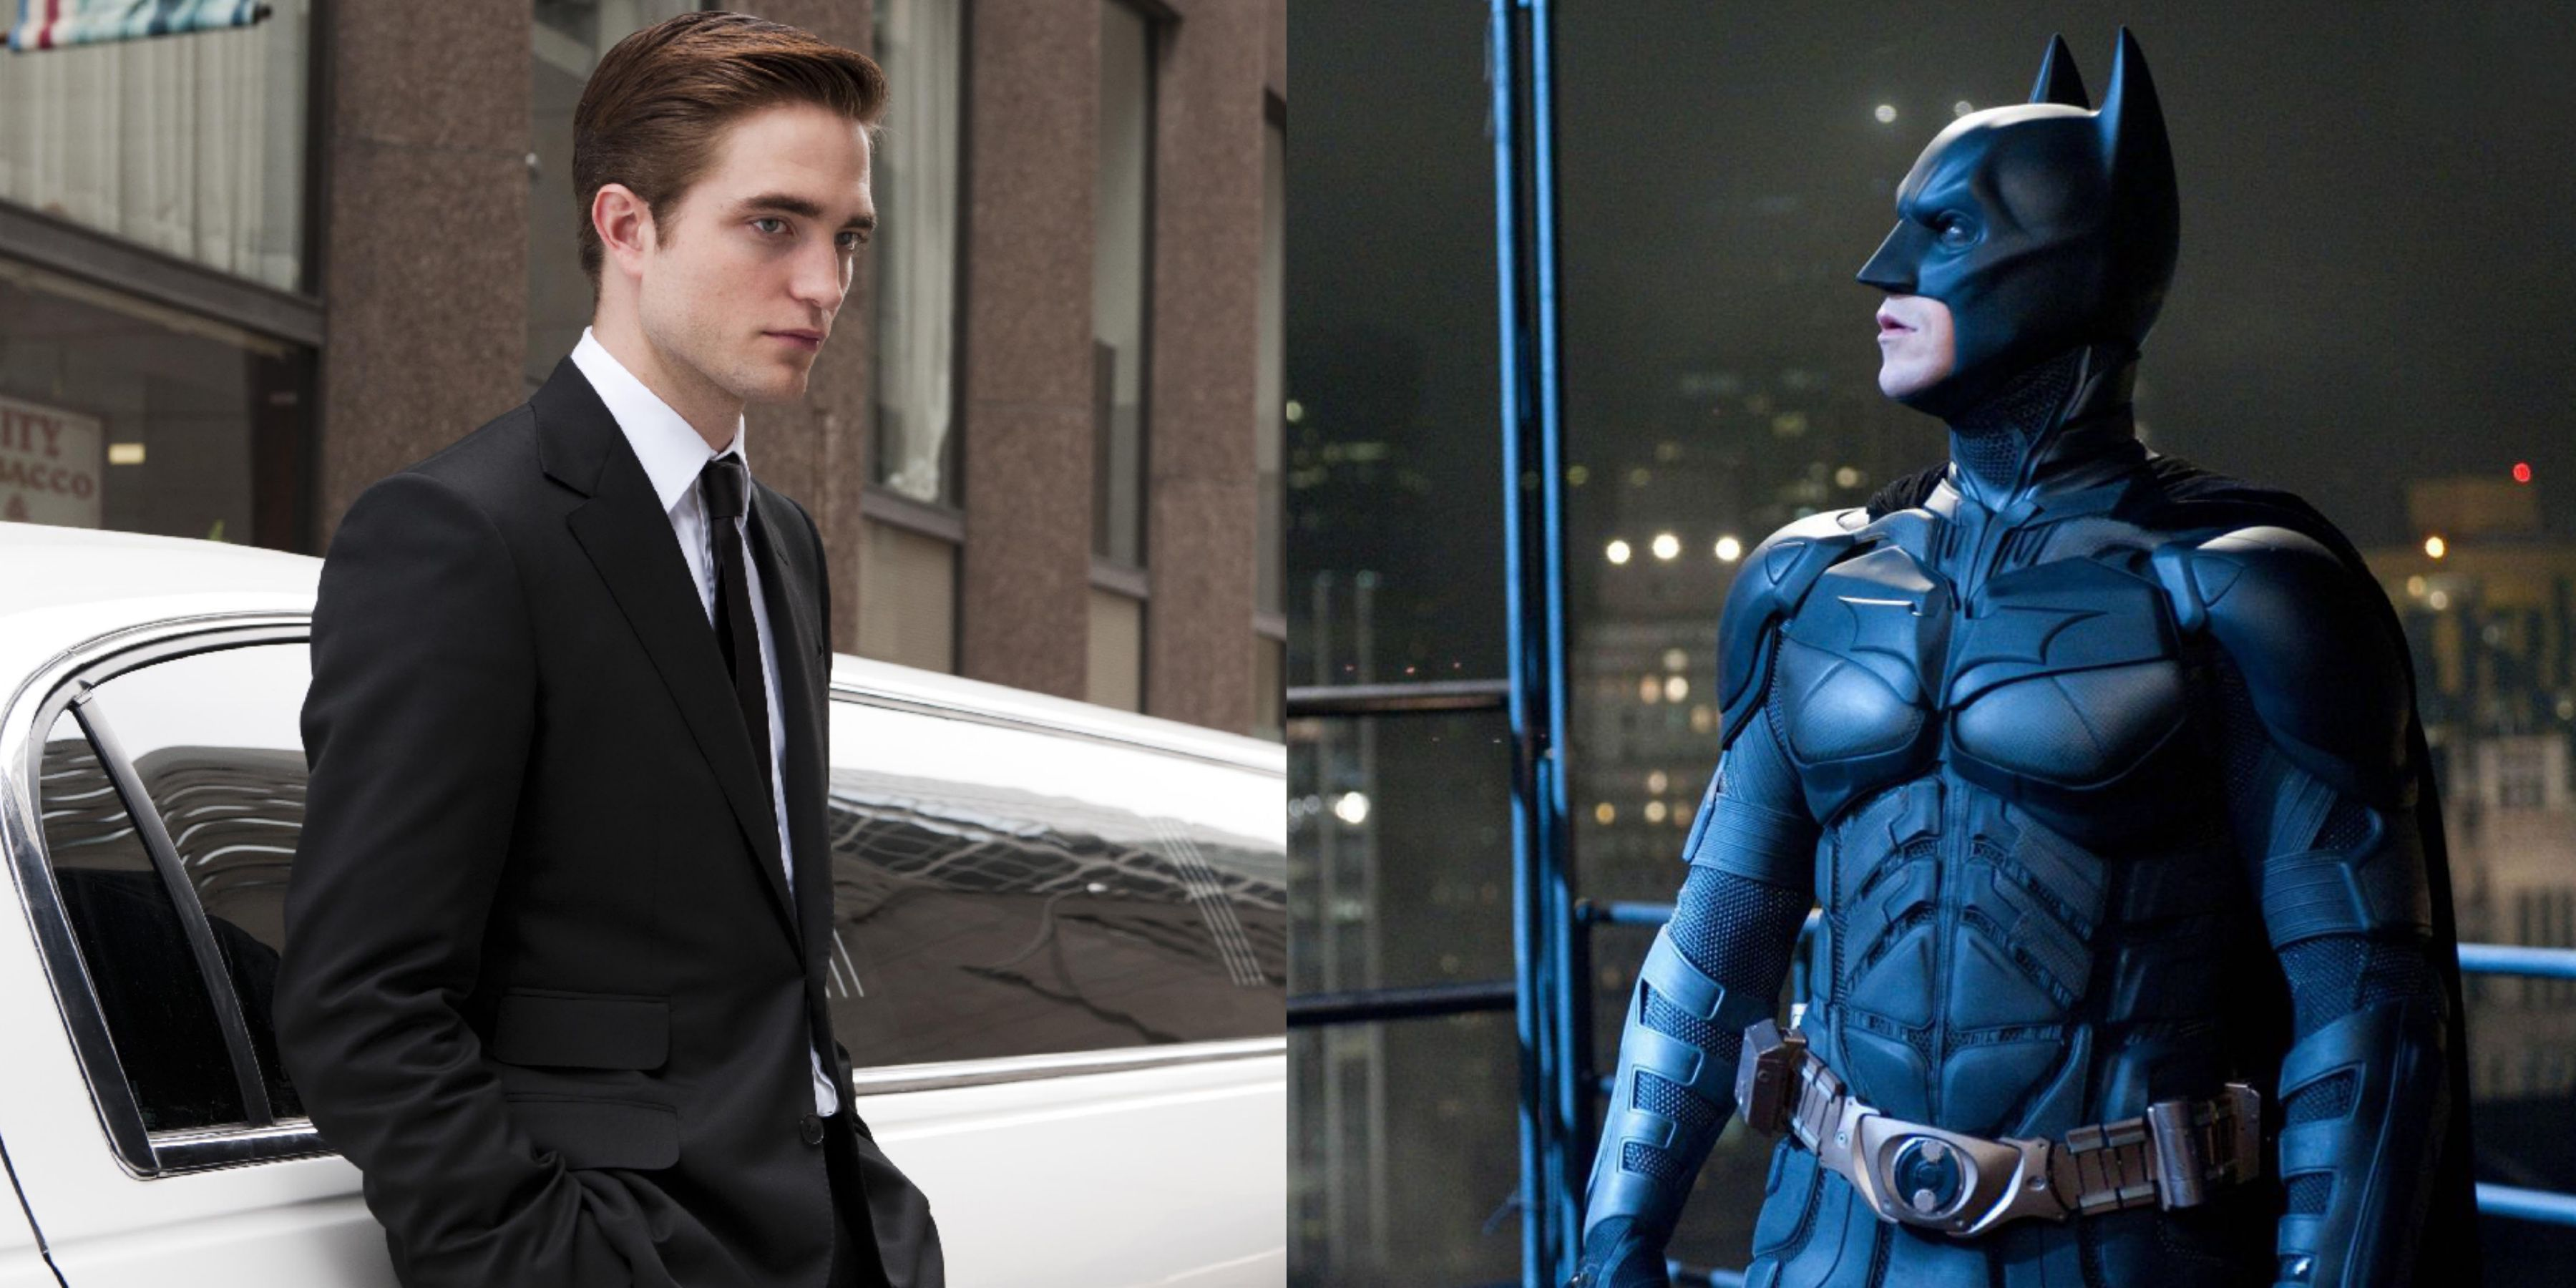 Robert Pattinson to be the new 'Batman' confirmed by Warner Bros